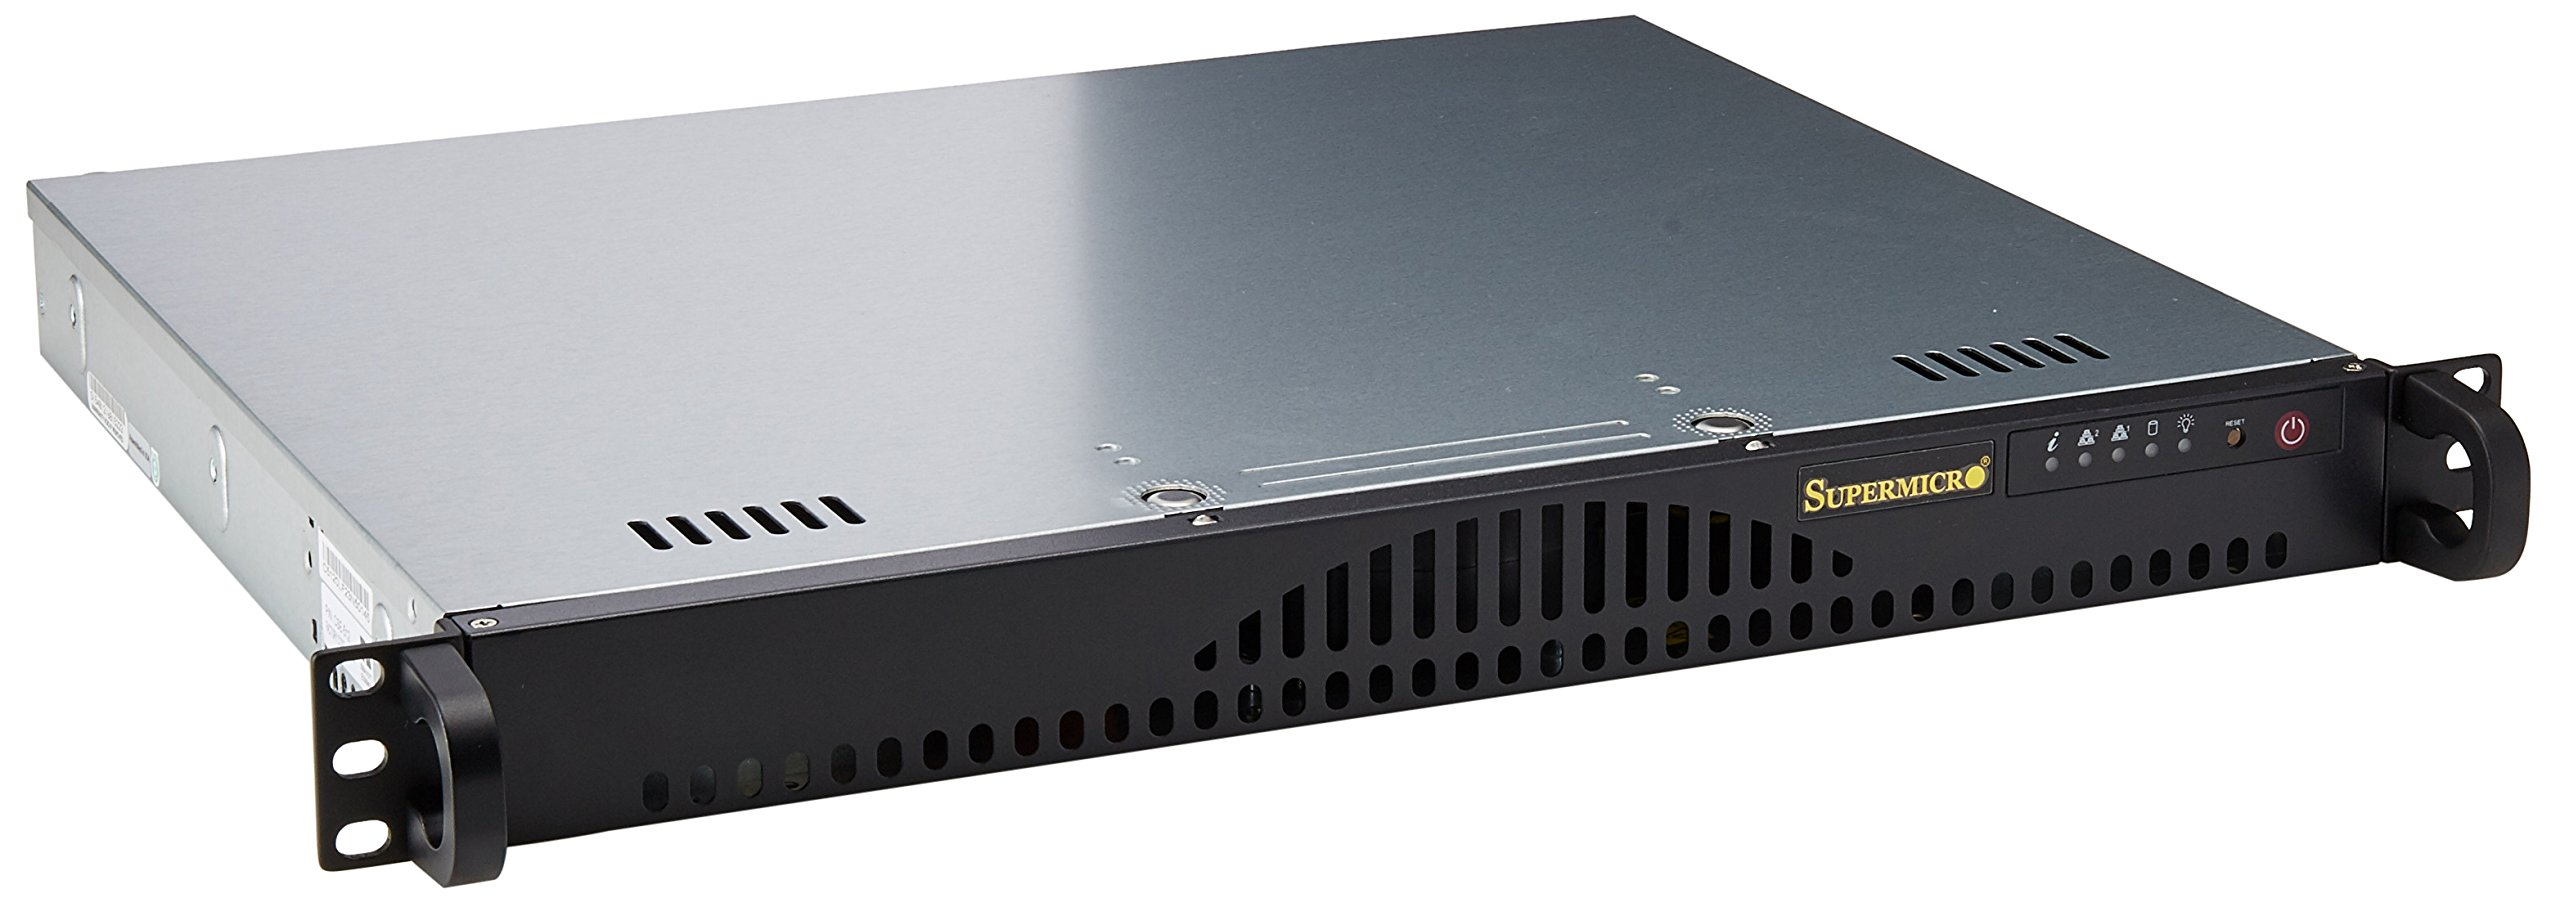 Supermicro Super Server Barebone System Components SYS-5018A-MLTN4 by Supermicro